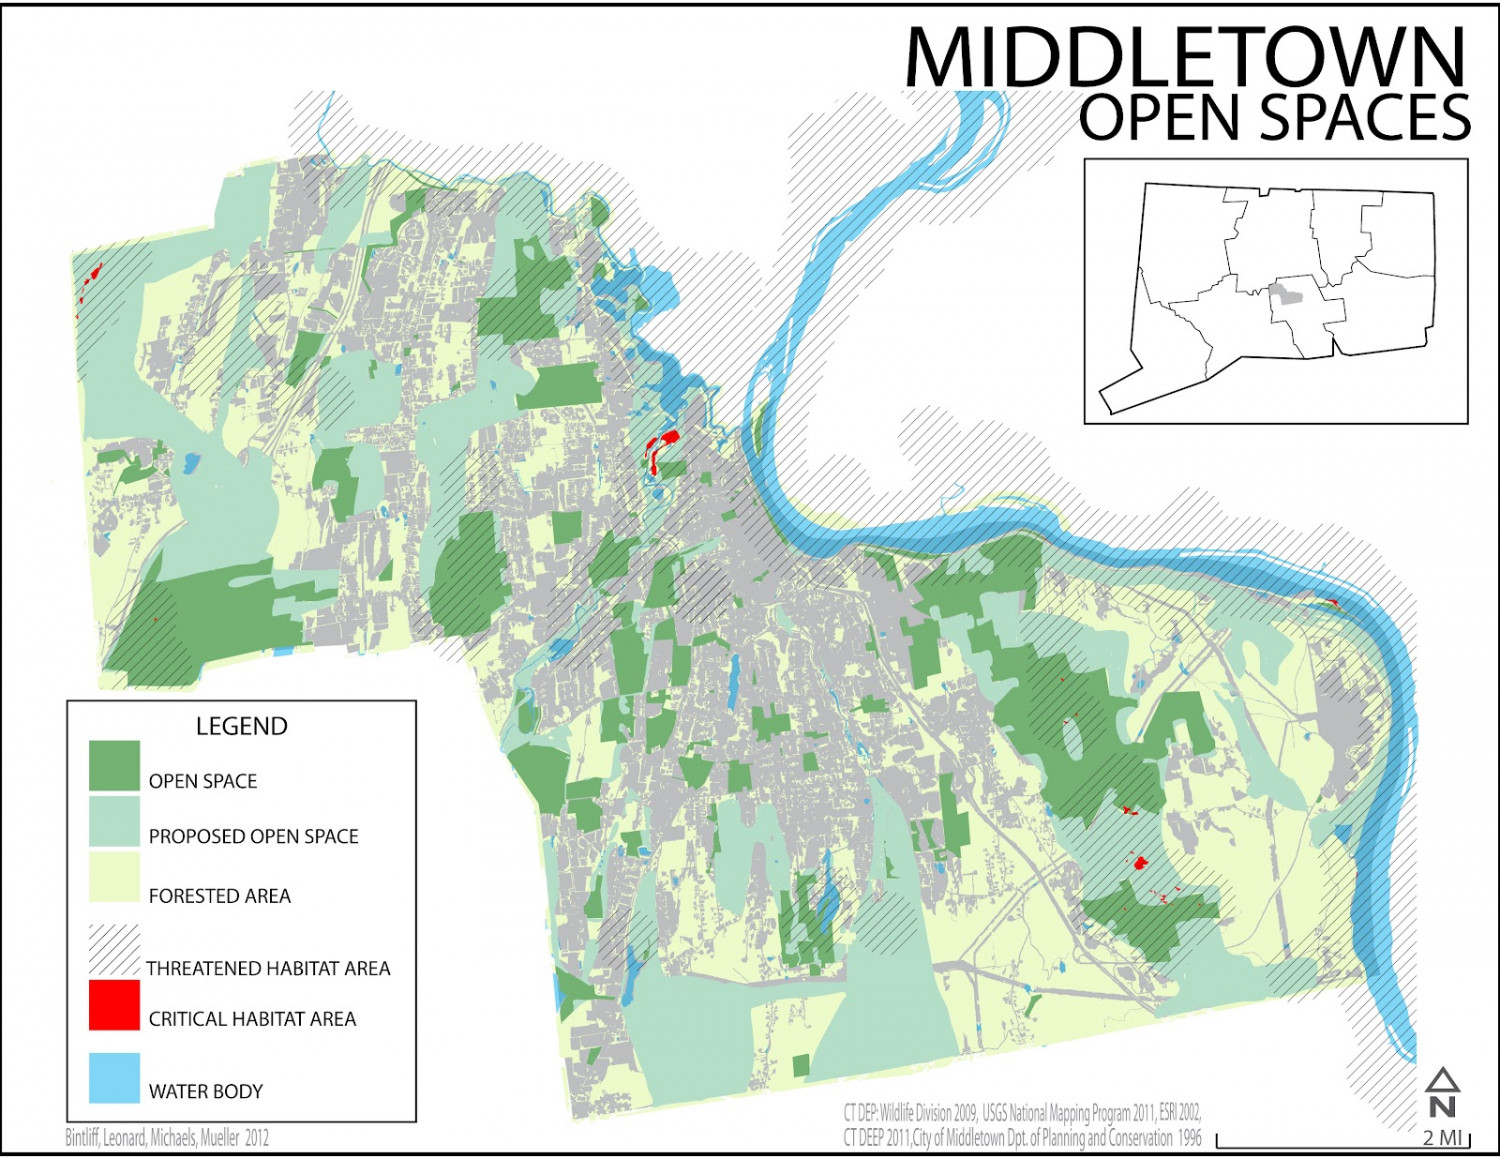 Middletown Open Spaces Infographic